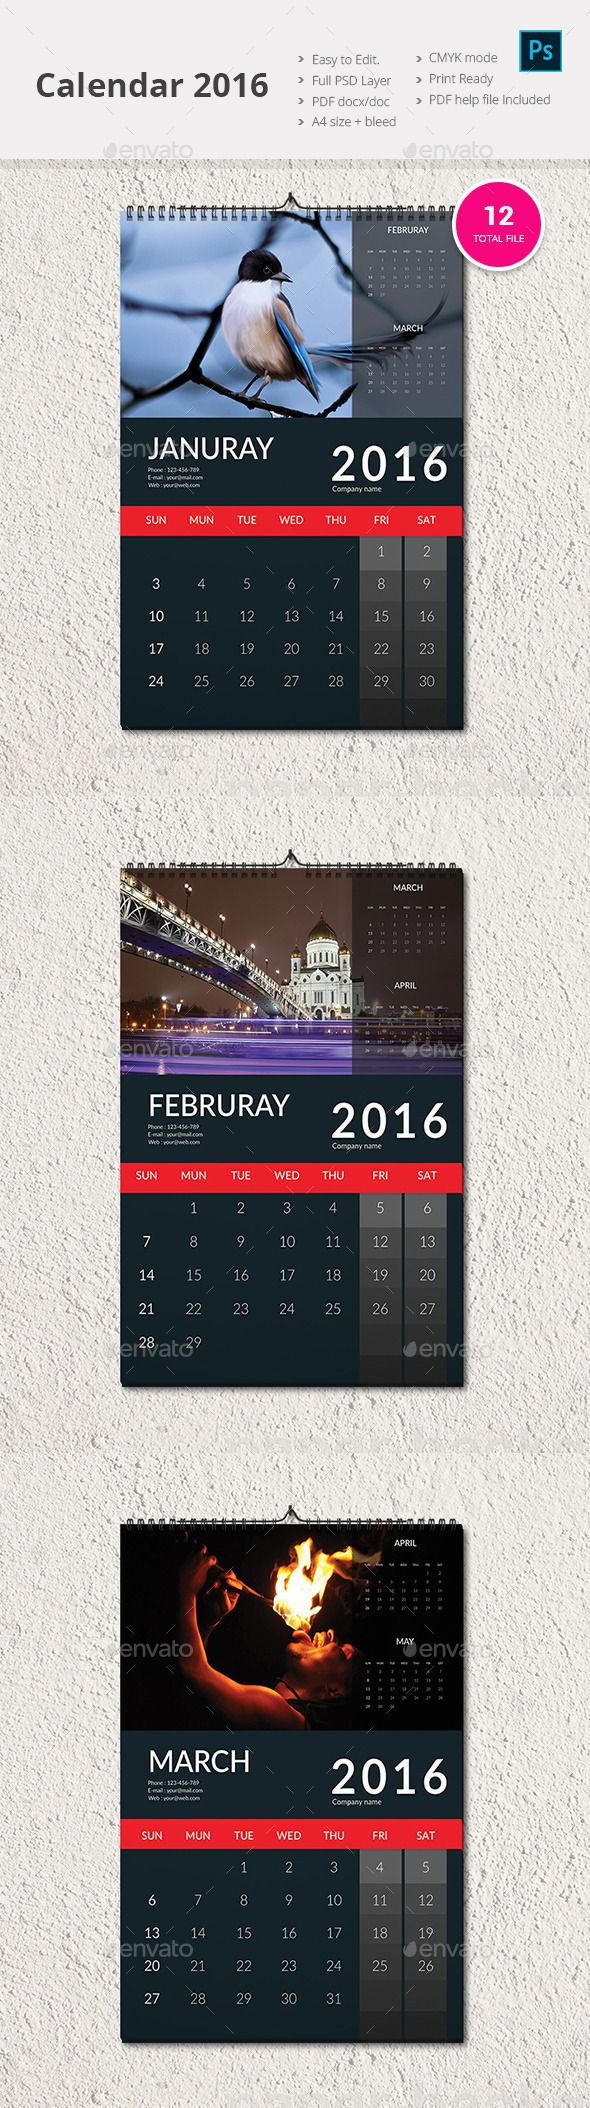 Wall Calendar 2016 Template PSD #design Download: http://graphicriver.net/item/wall-calendar-2016/13721964?ref=ksioks